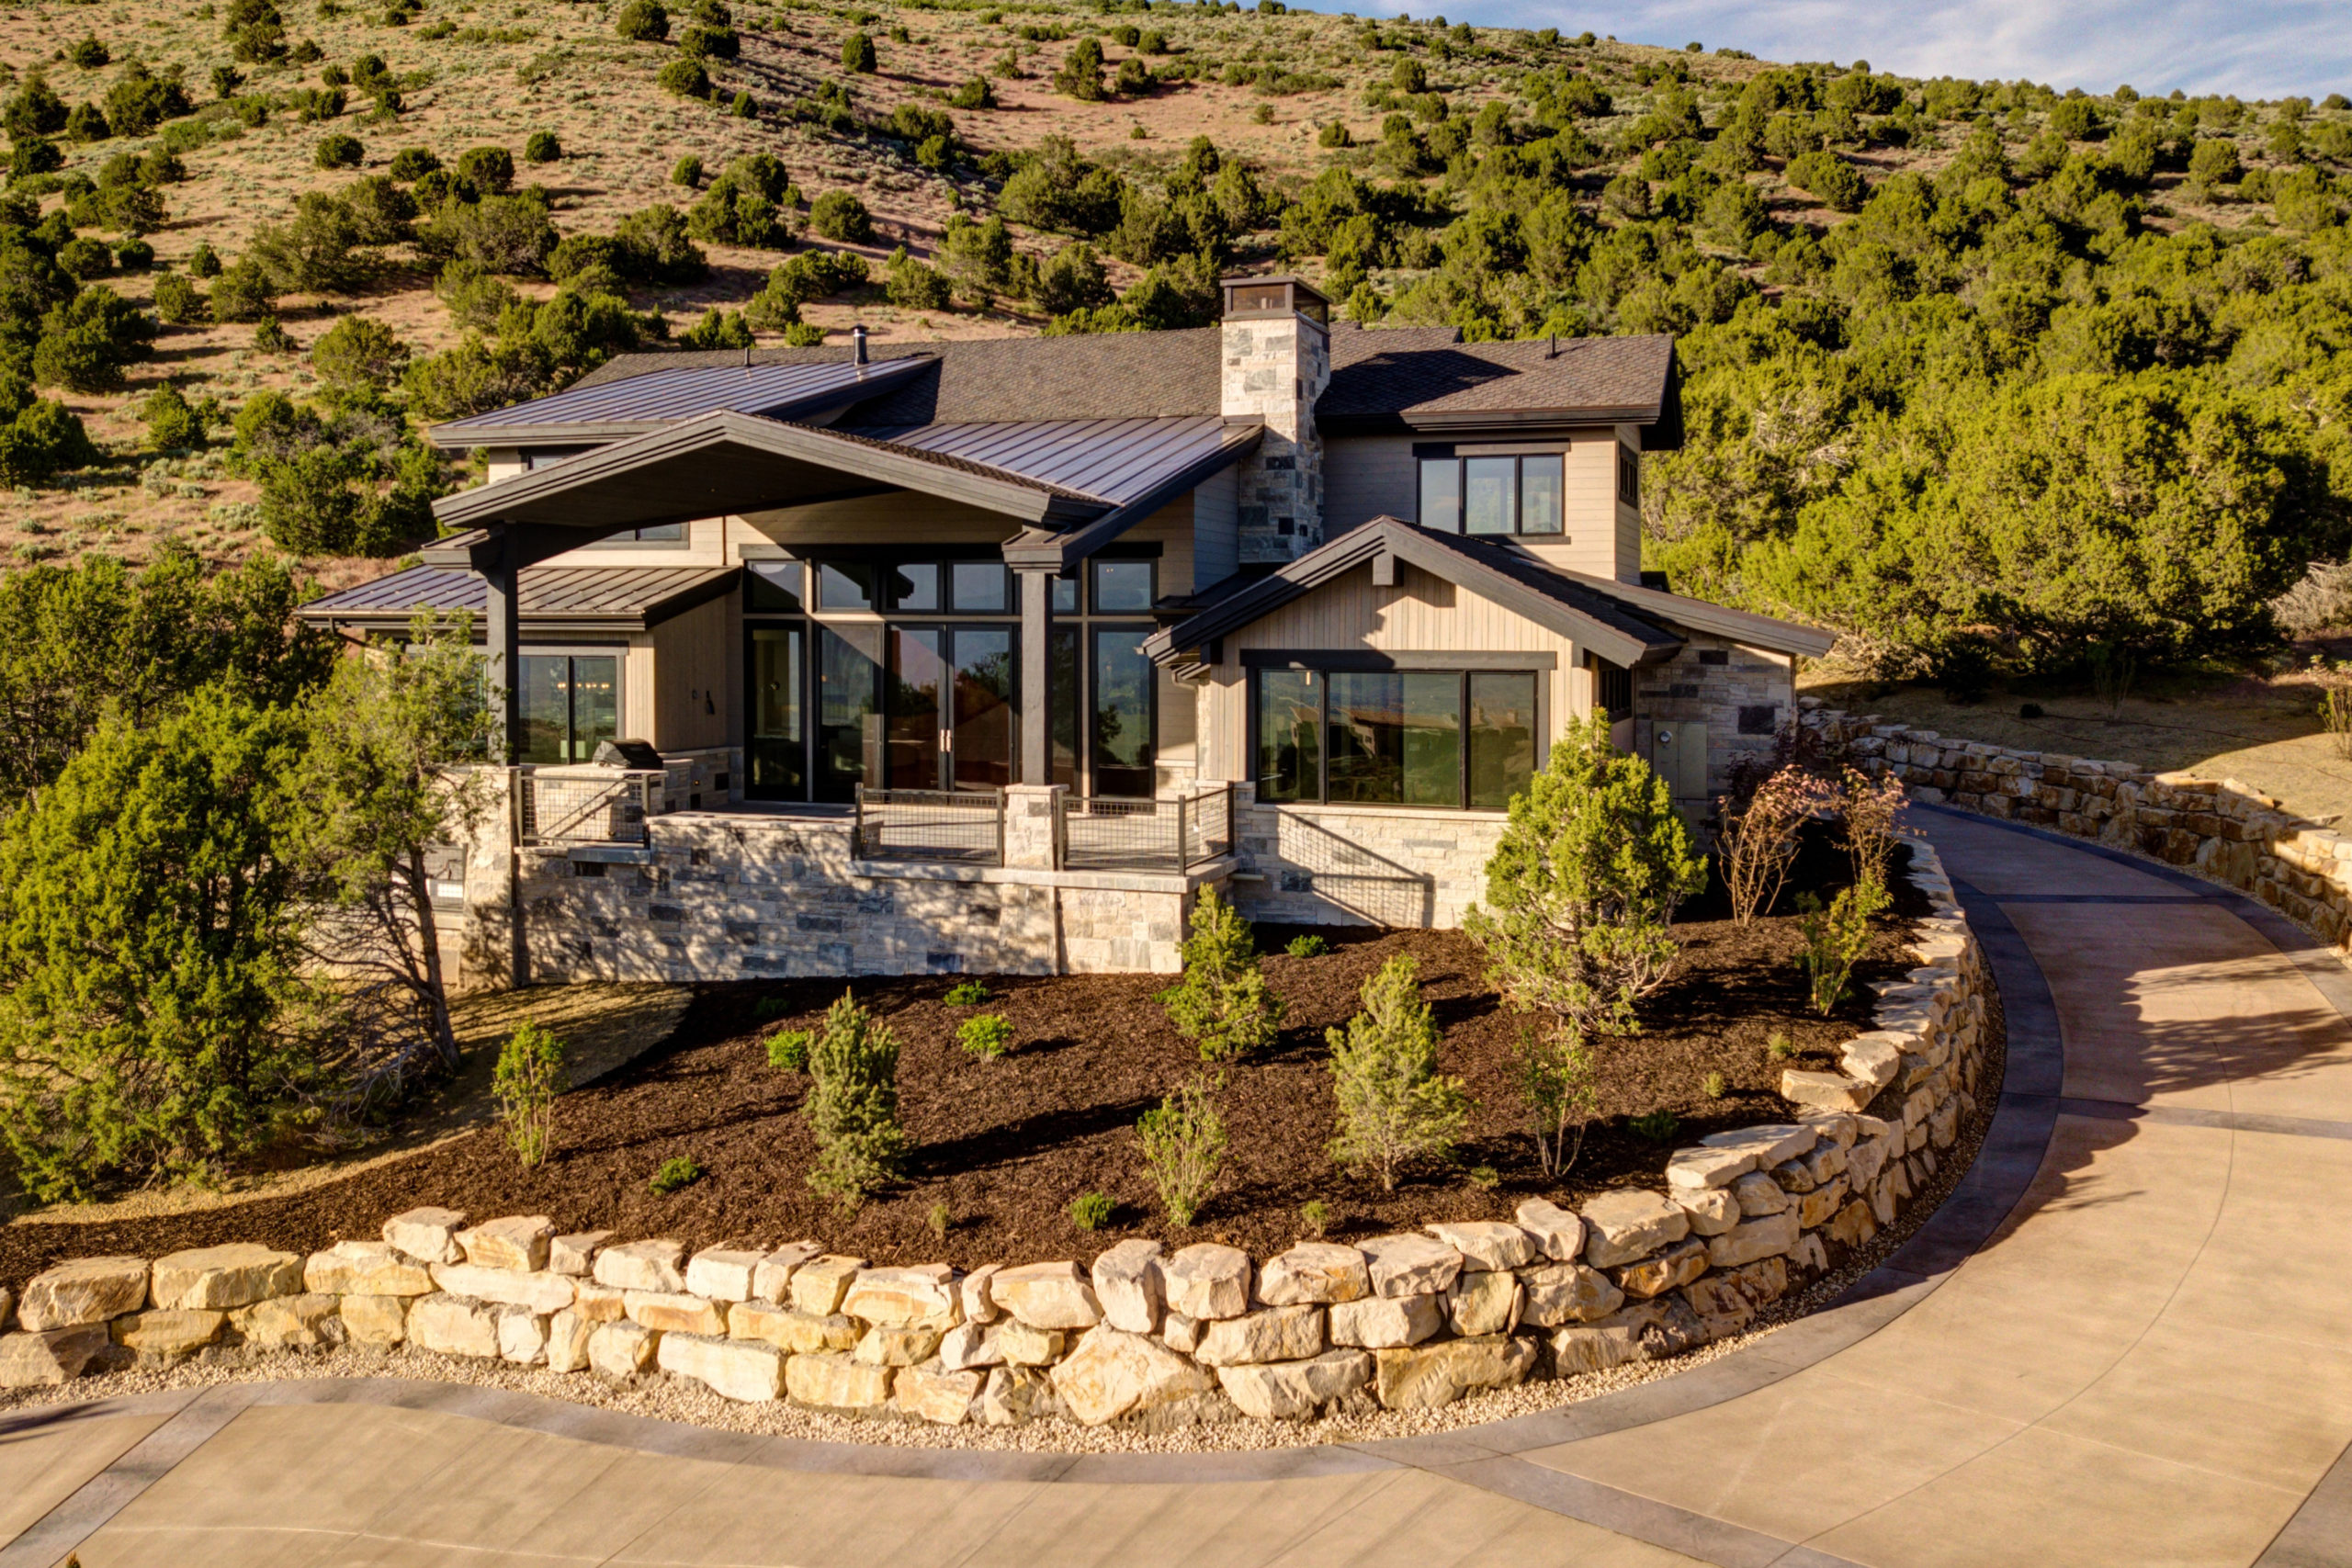 Home Building At Red Ledges Gated Community Utah